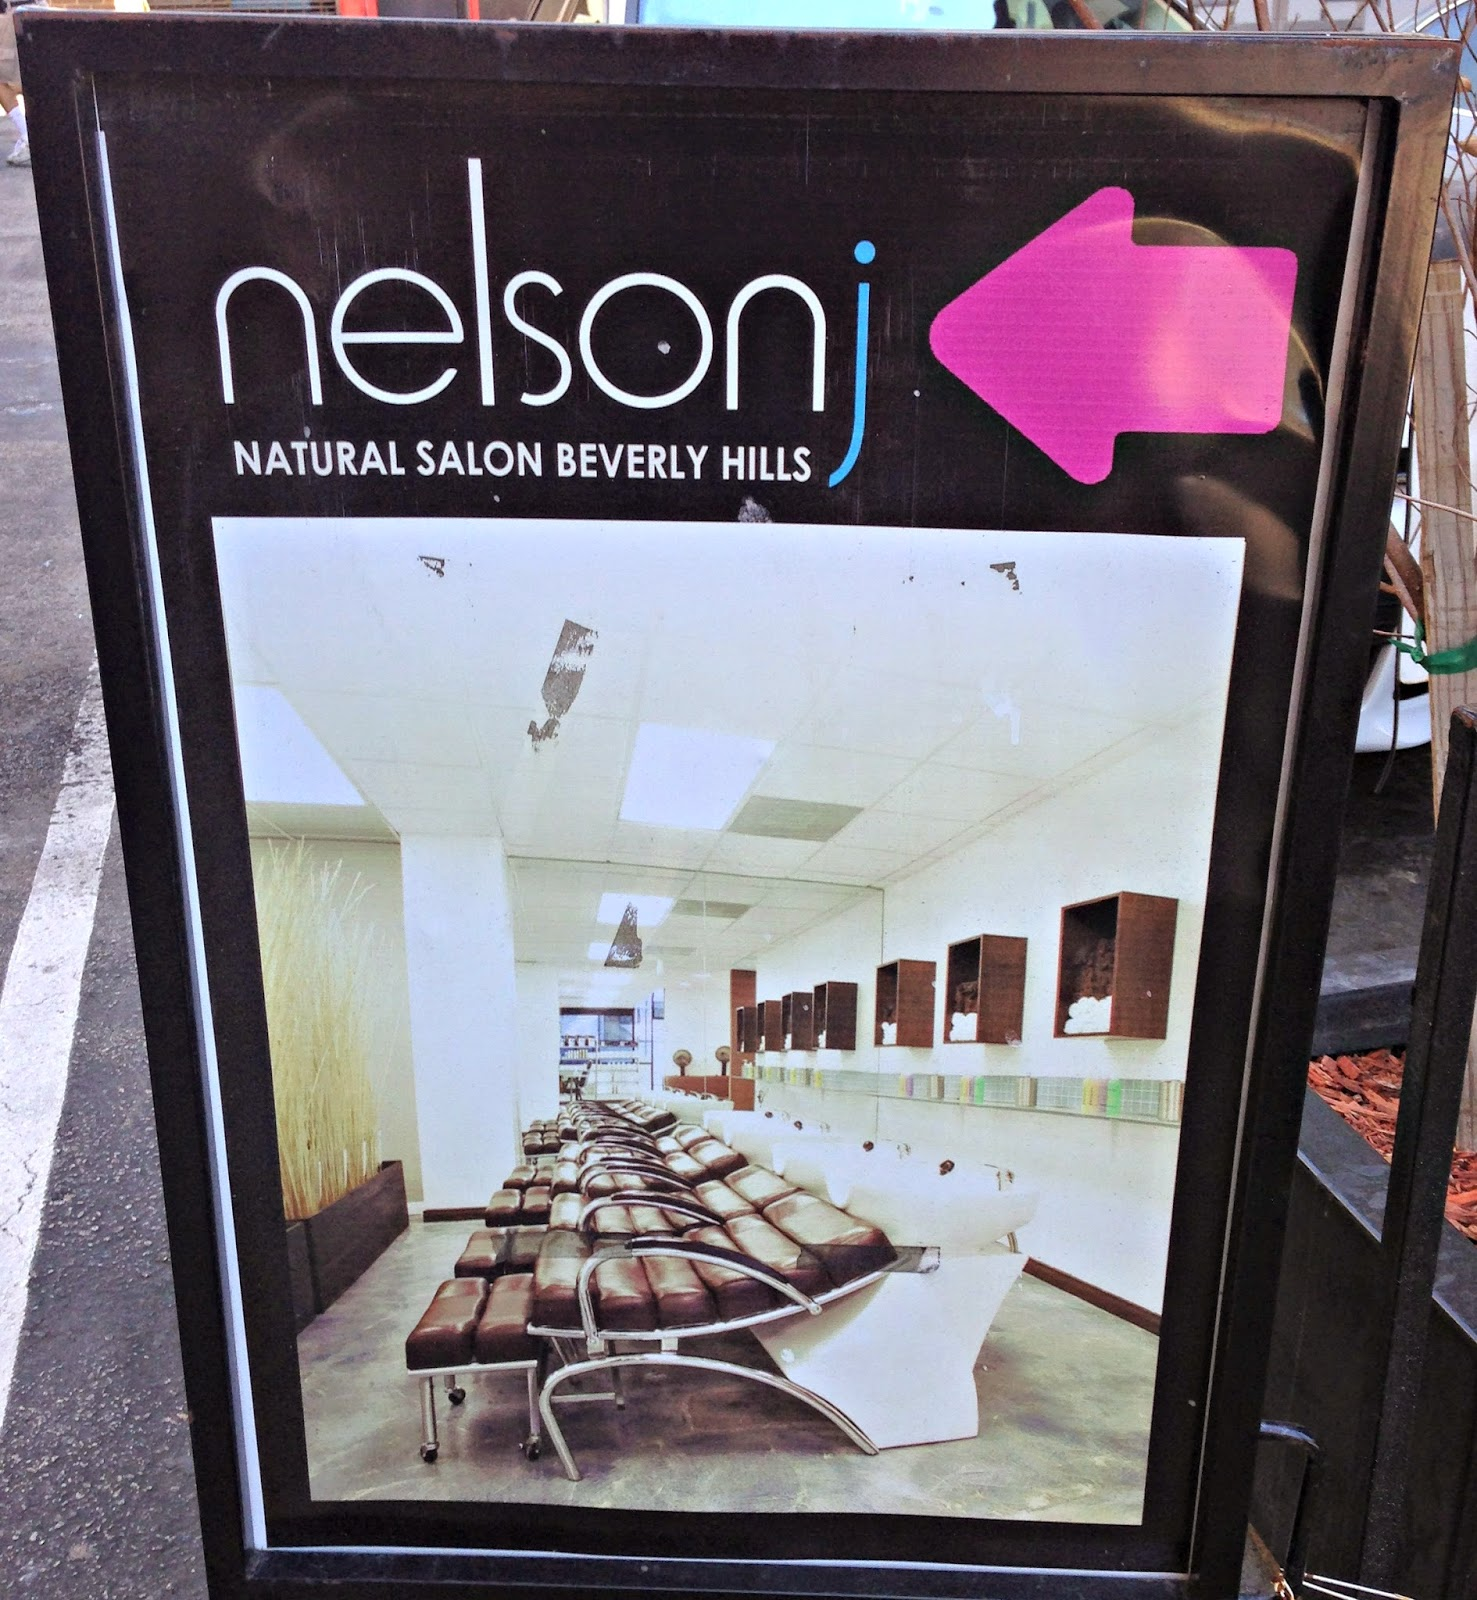 nelson j salon, beverly hills, aveda hair color, cid style file, new hair color, red head, natural salon